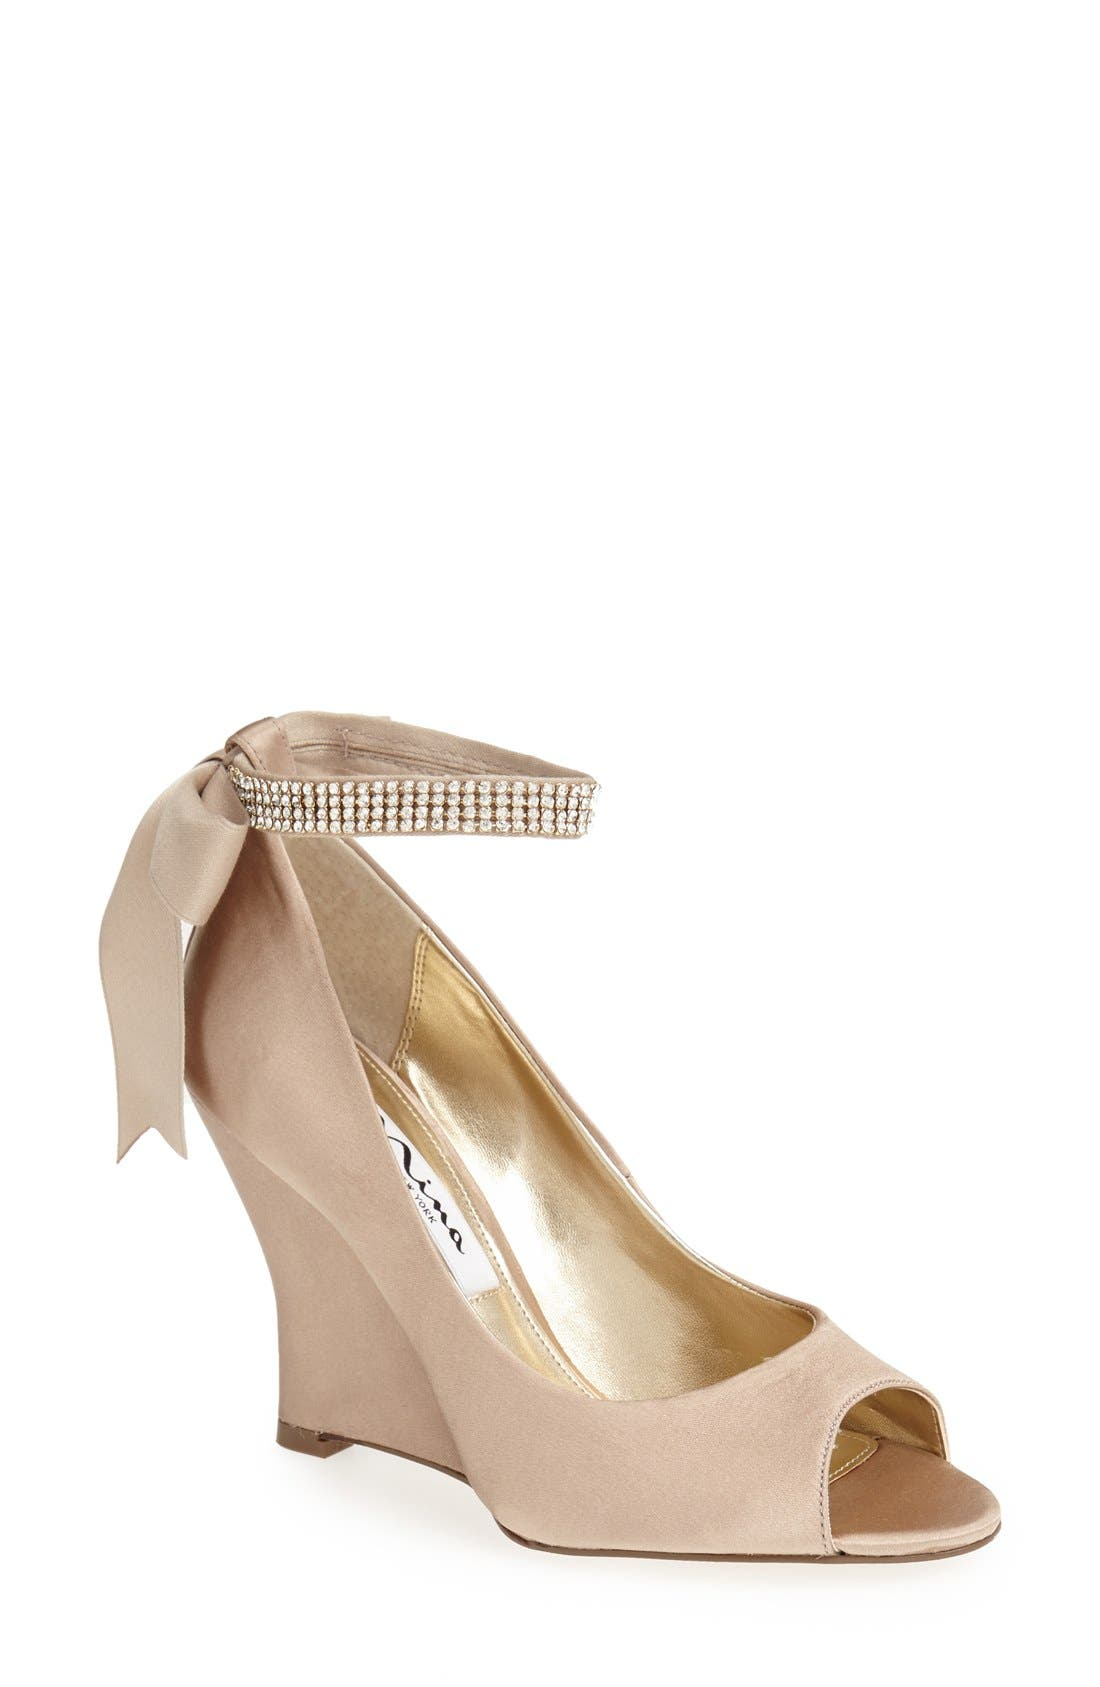 'Emma' Crystal Embellished Ankle Strap Pump,                             Main thumbnail 1, color,                             291